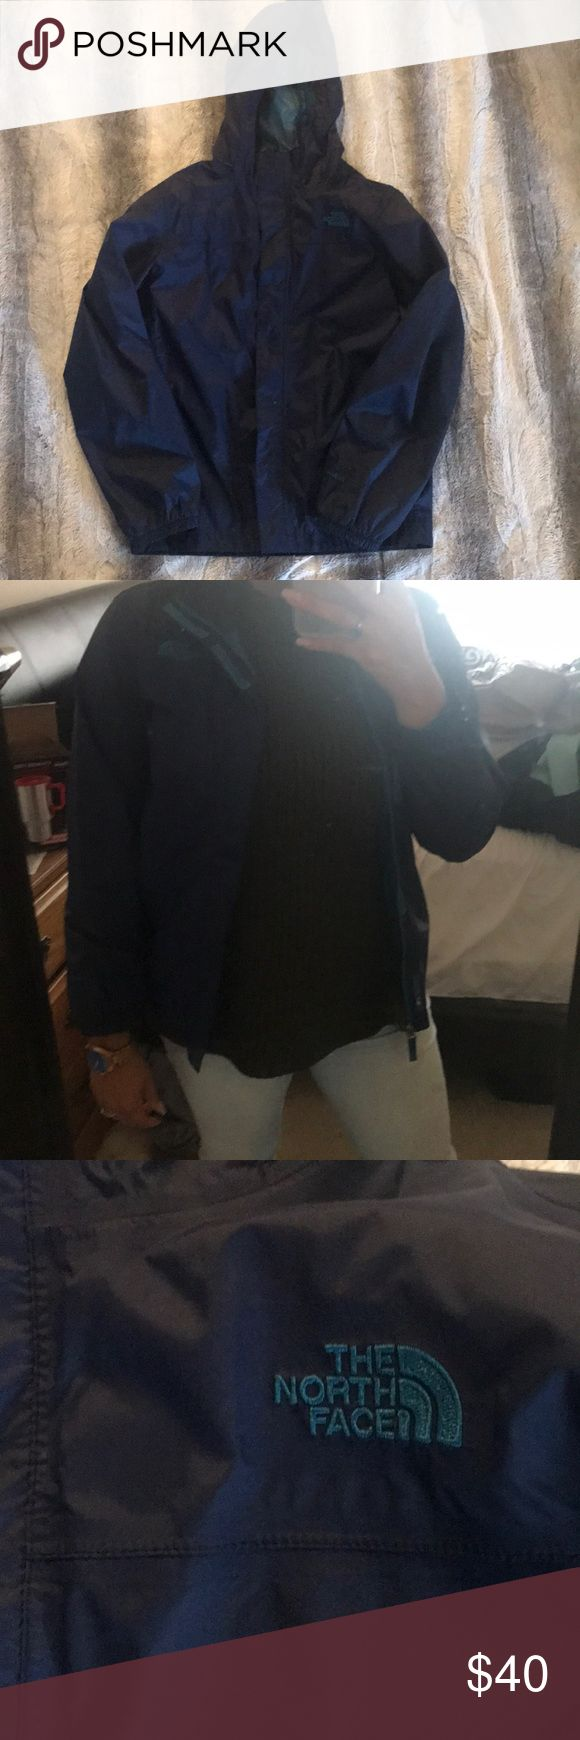 NWOT Northface Rain Jacket Navy Blue and teal Northface rain Jacket. Boys large, fits like women's small. Rain repellent, Leigh weight, wind resistant. Perfect for rainy days spent outdoors. North Face Jackets & Coats Utility Jackets